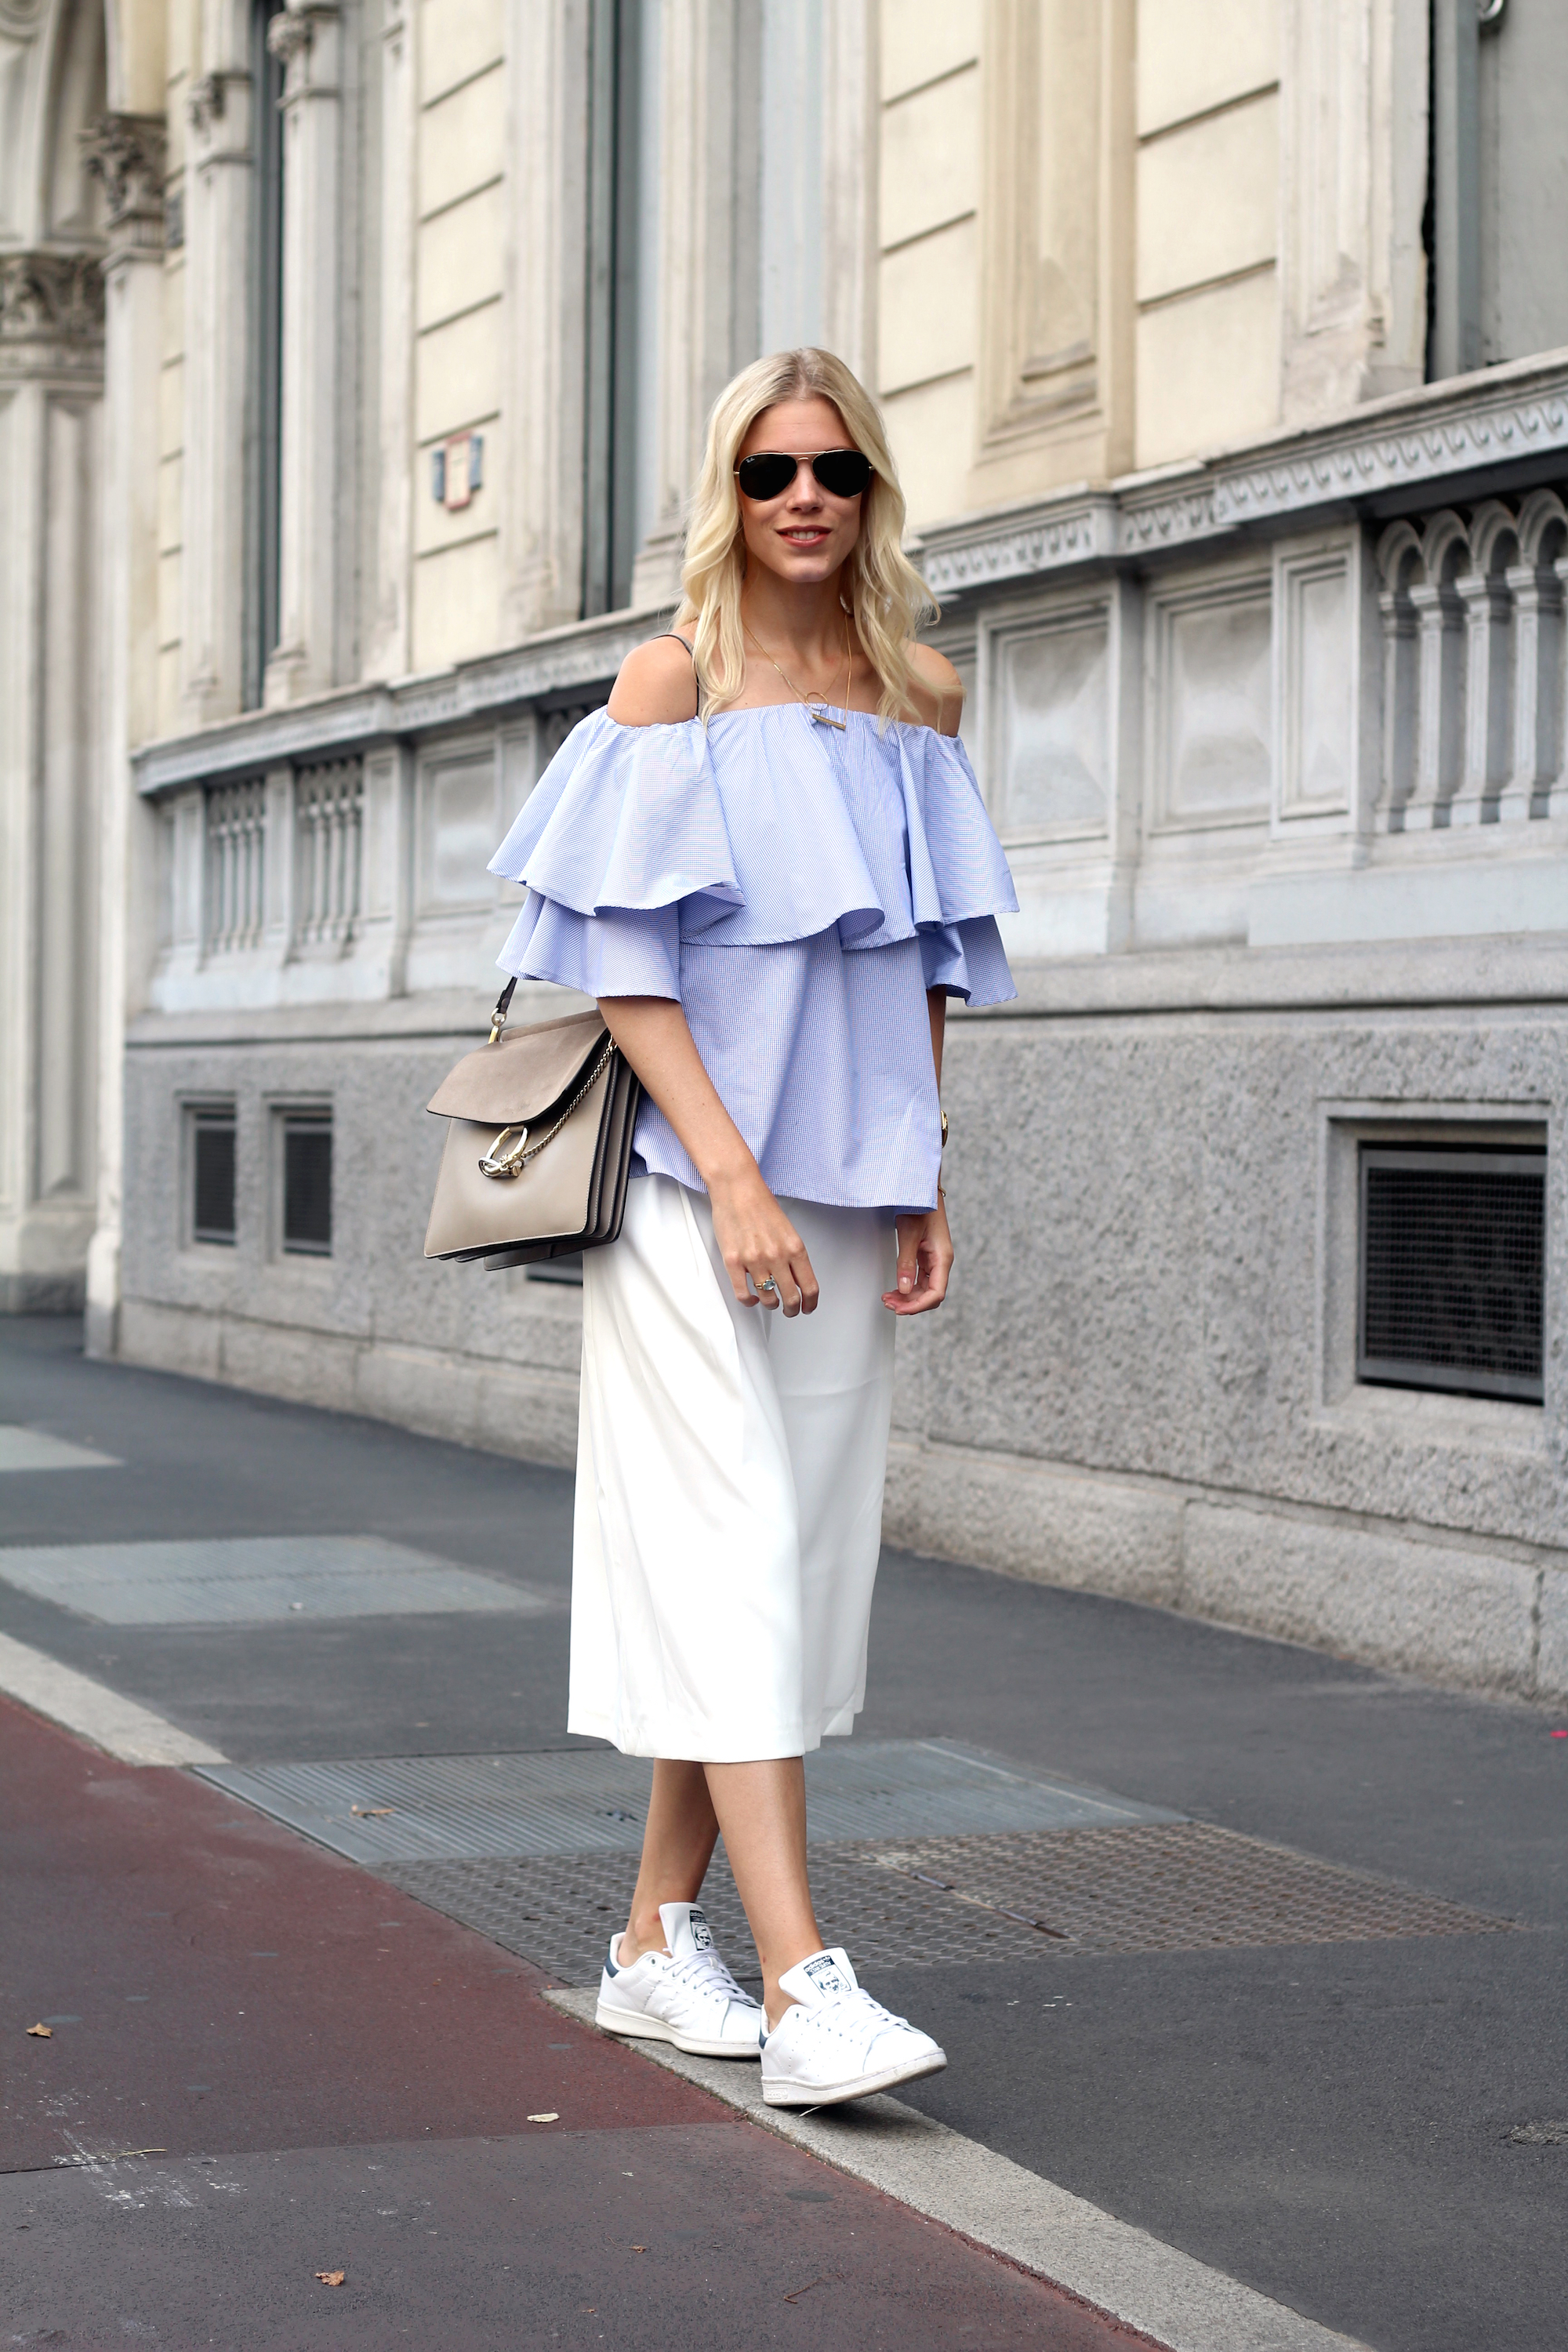 milan_fashion_week_culotte_chloe_faye_somehappyshoes